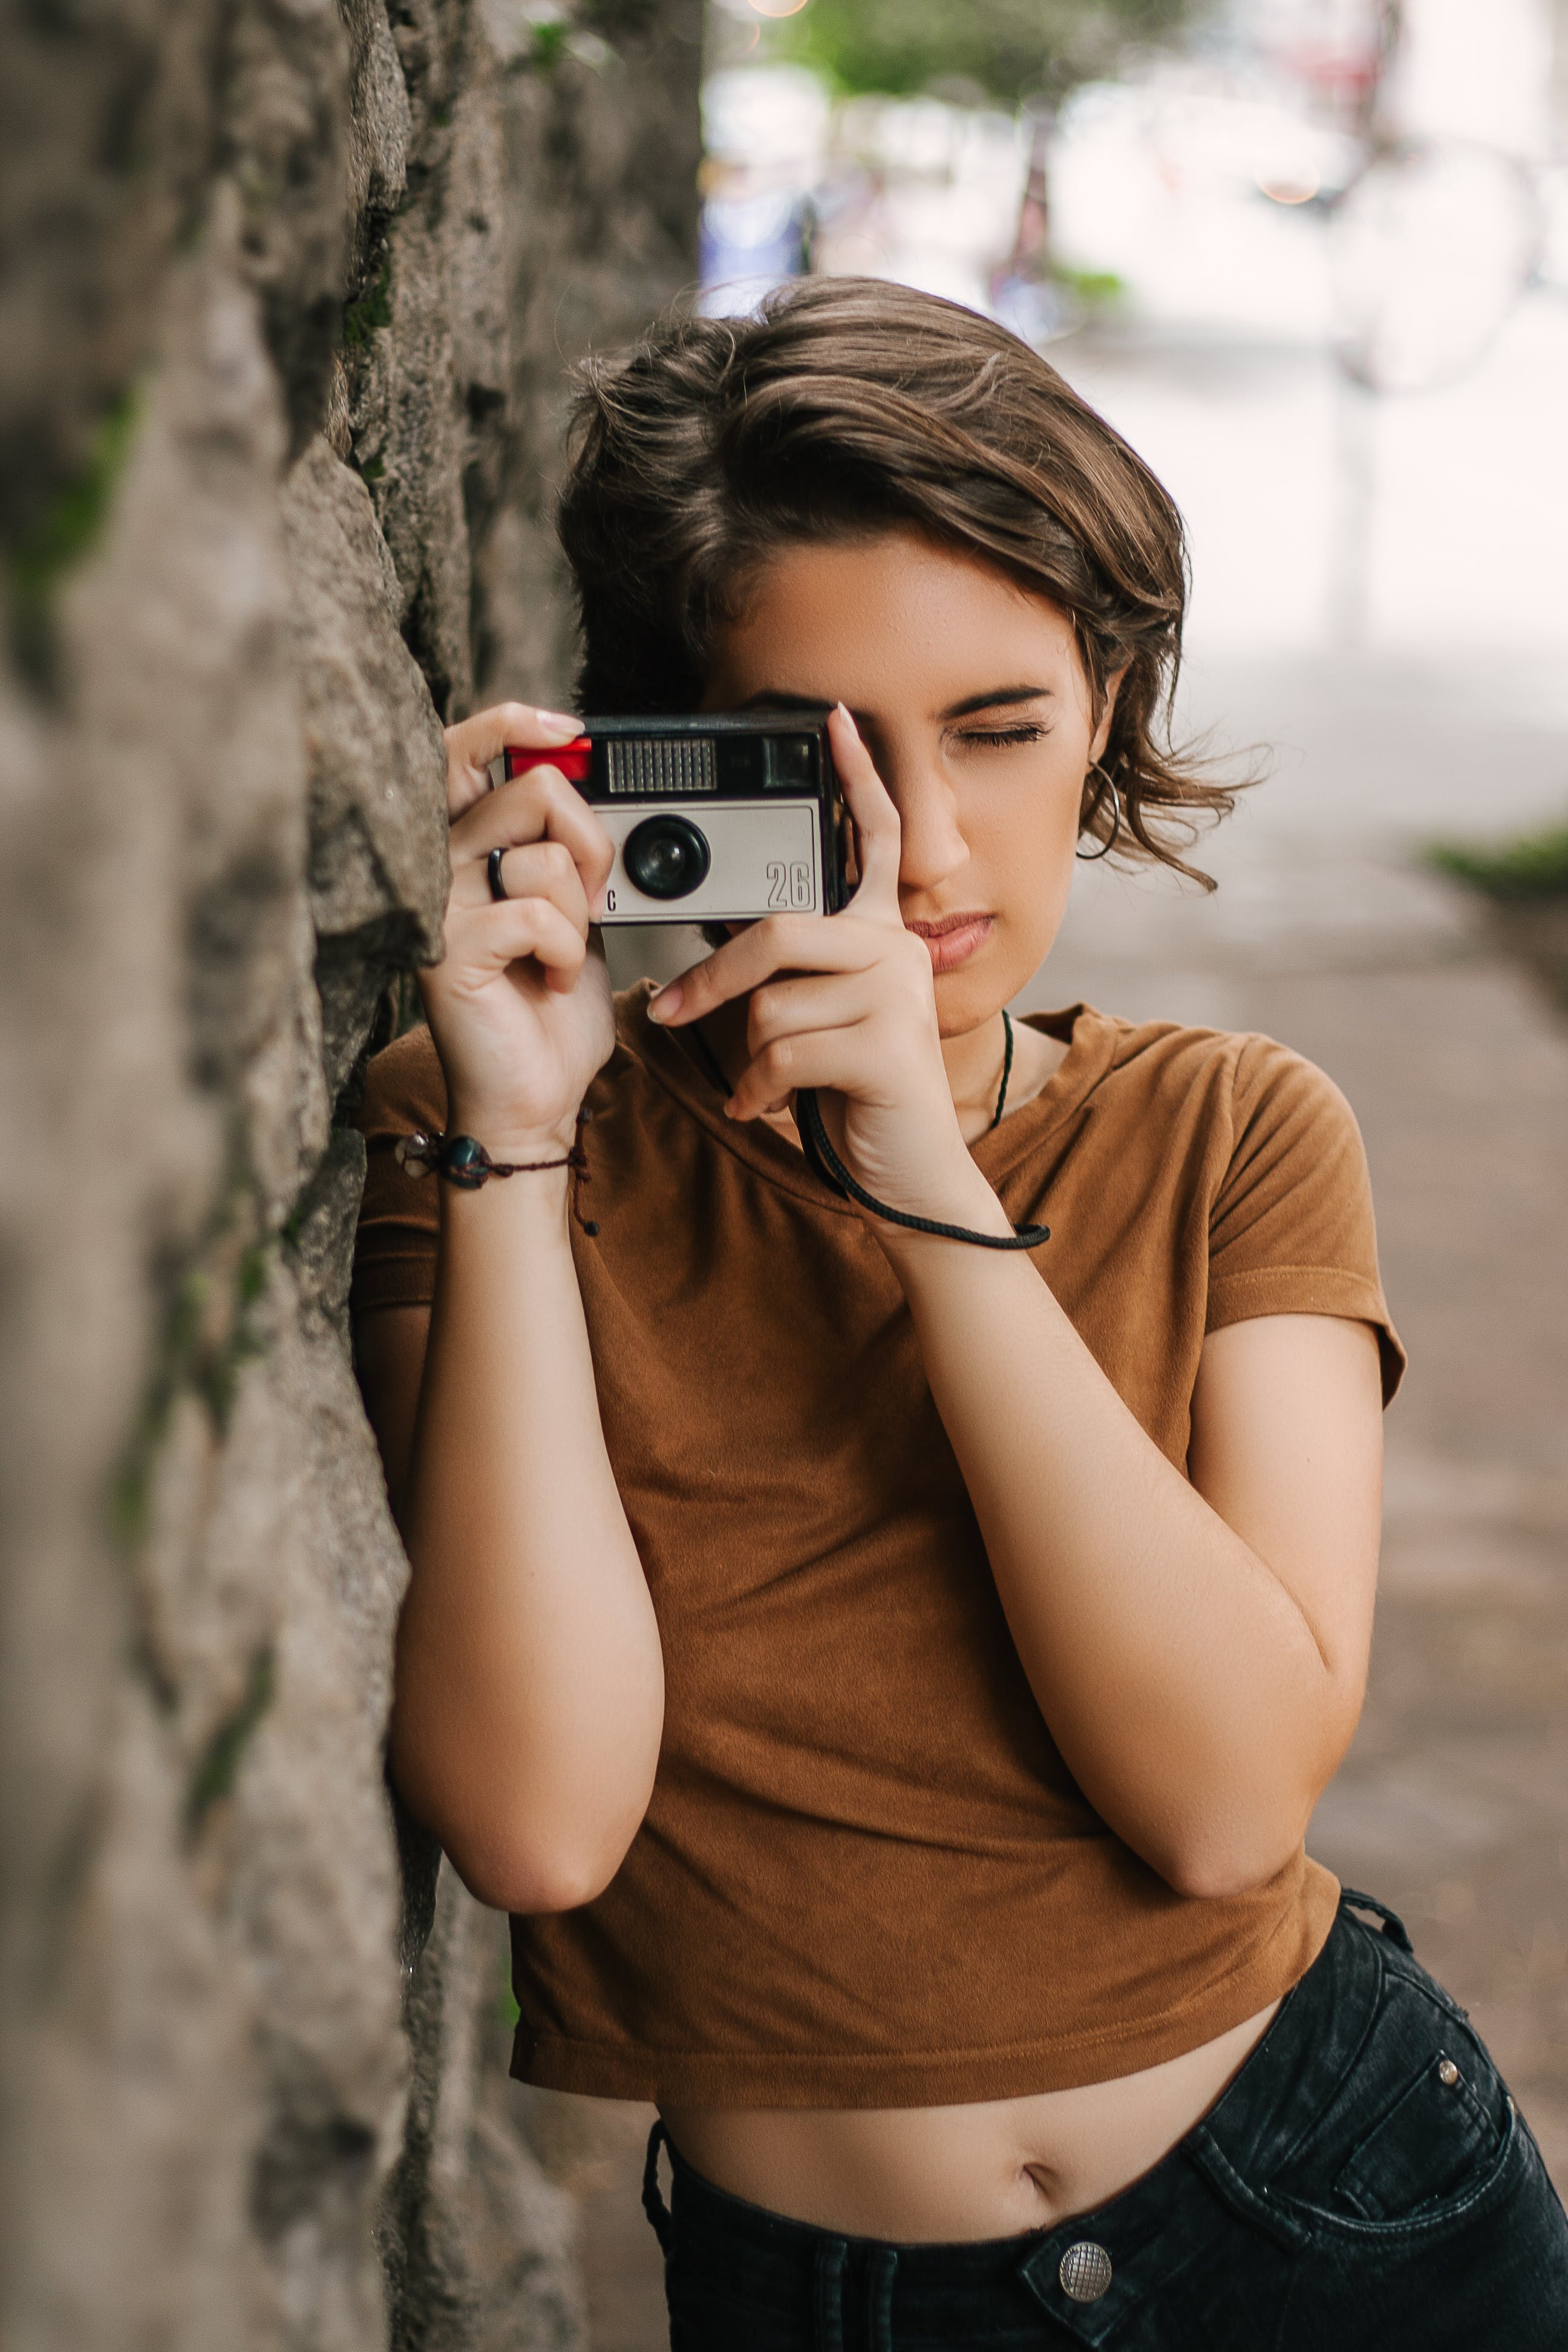 Woman Taking Photo While Leaning on Wall